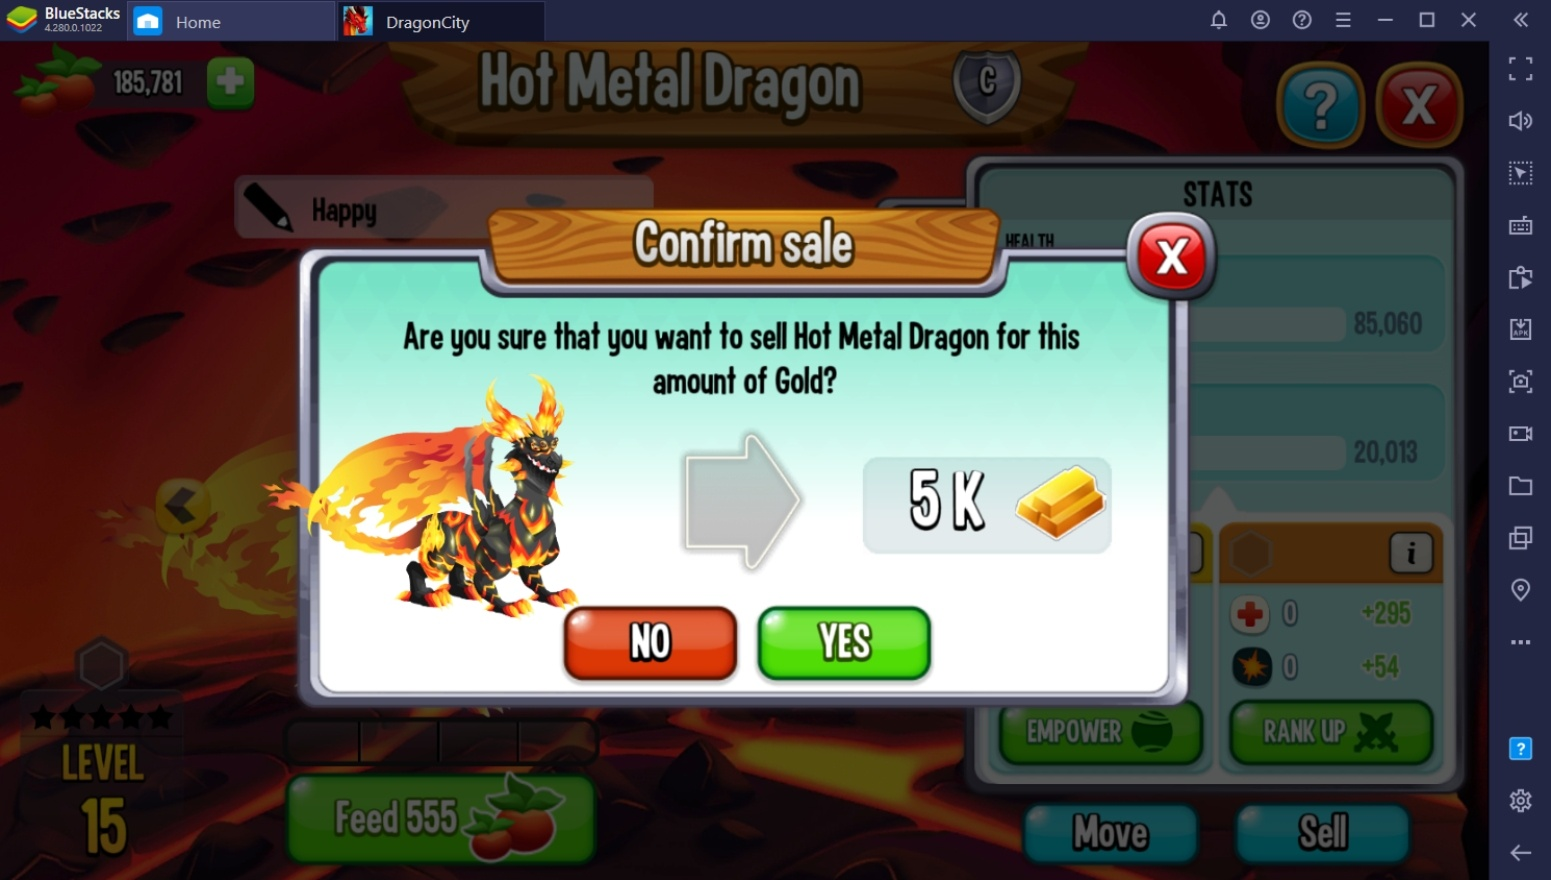 BlueStacks Guide to Farming Food and Gold in Dragon City